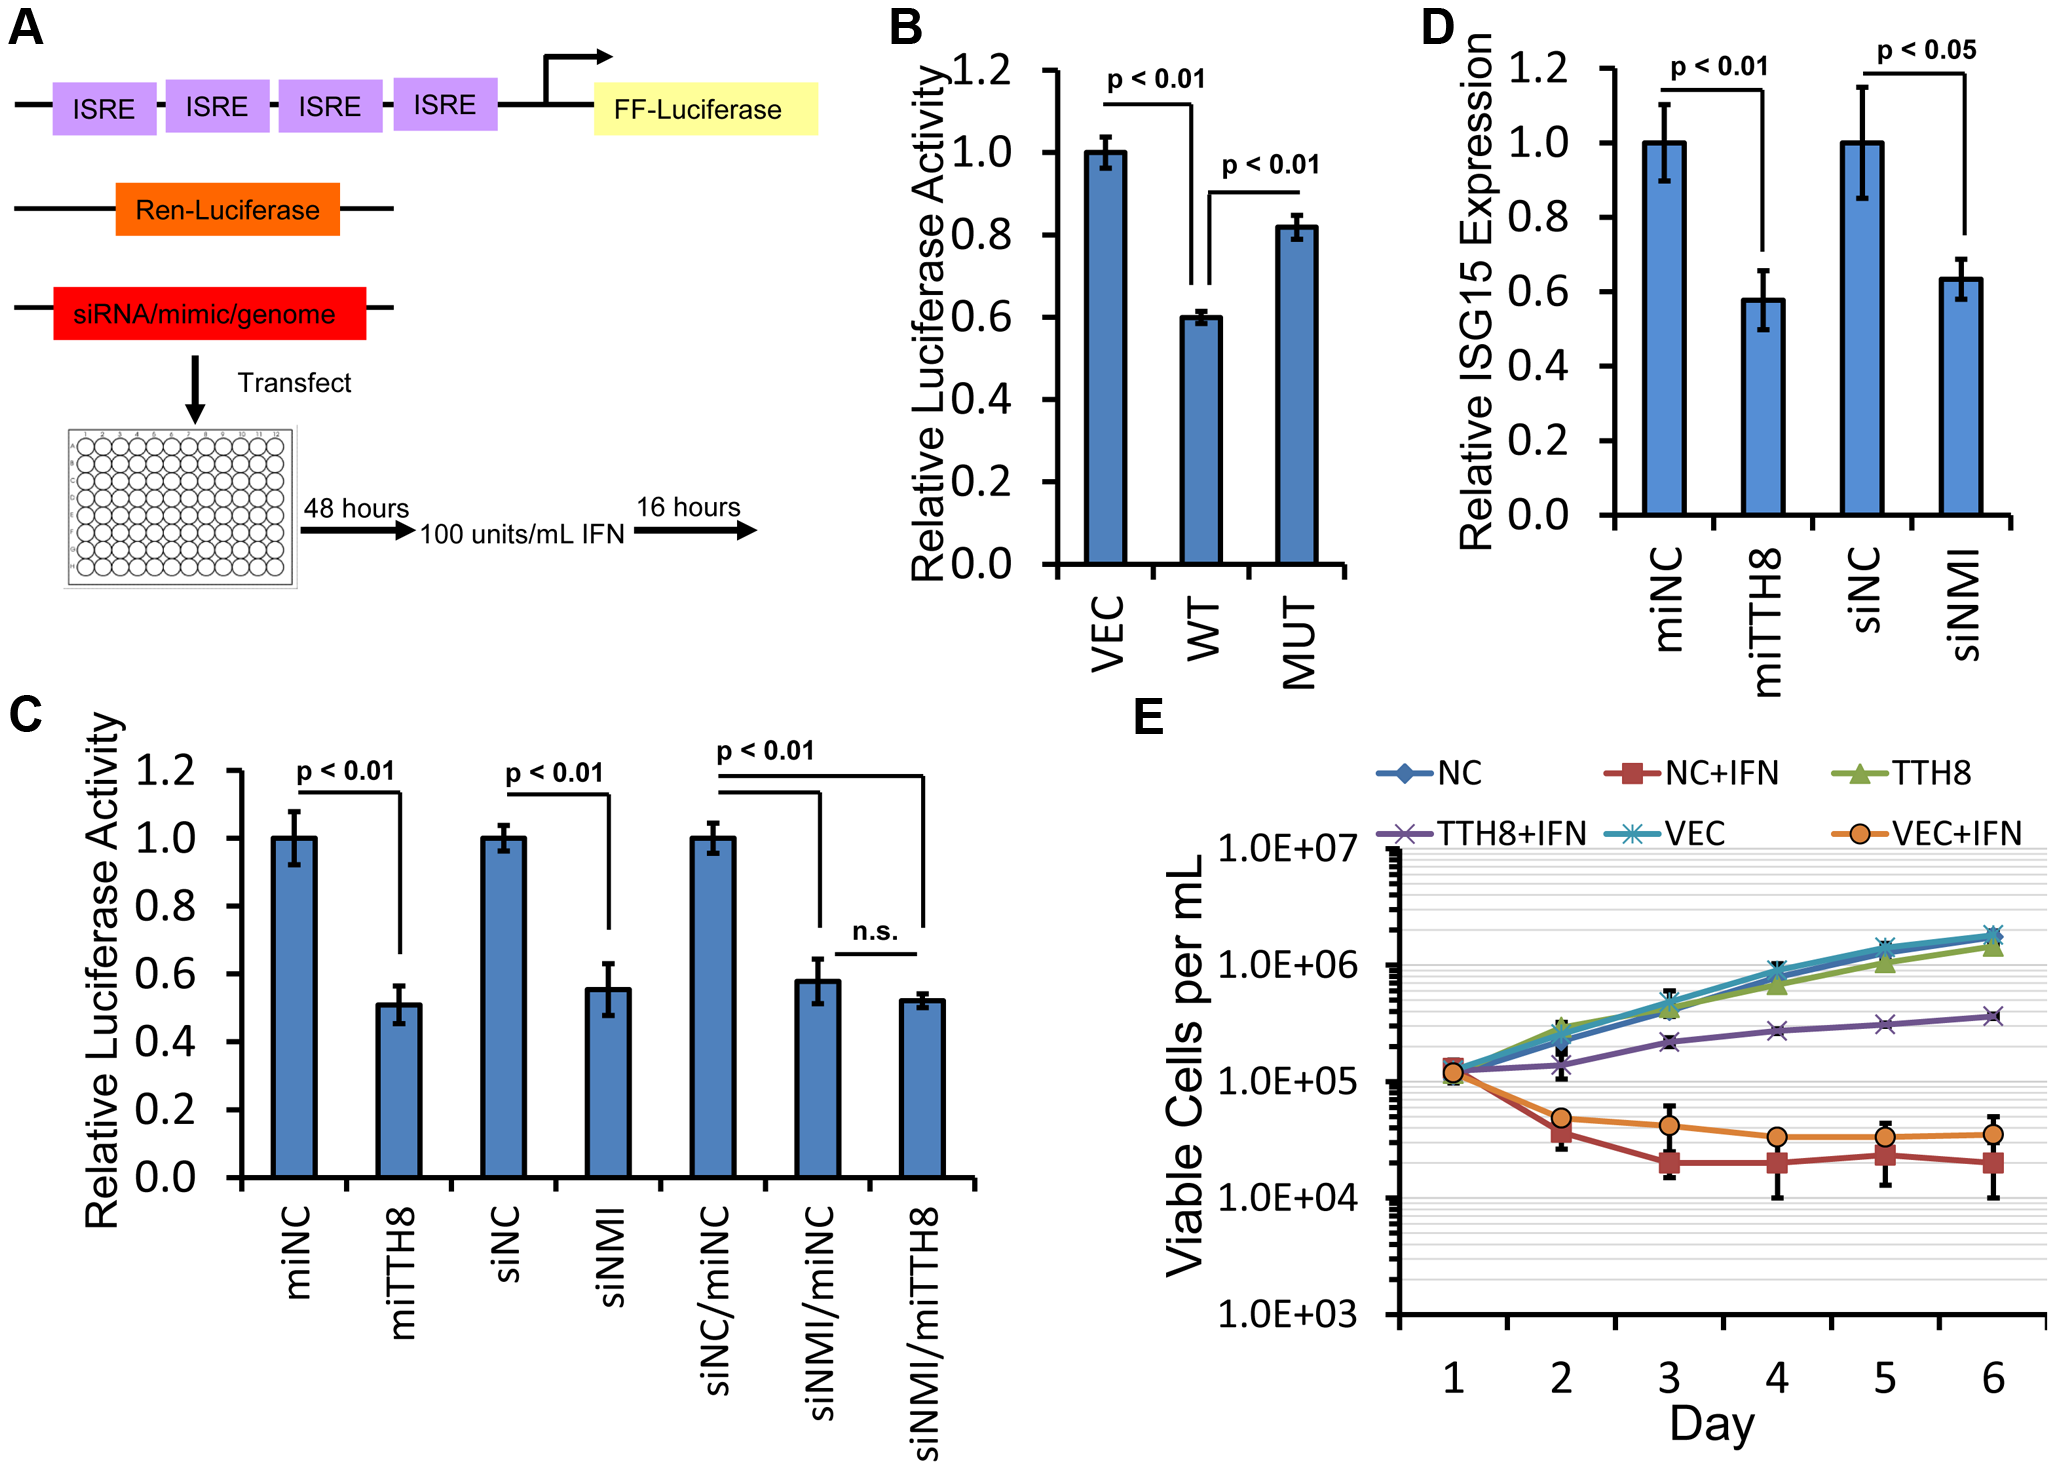 TTV-tth8-miR-T1 or knockdown of NMI inhibits interferon signaling.